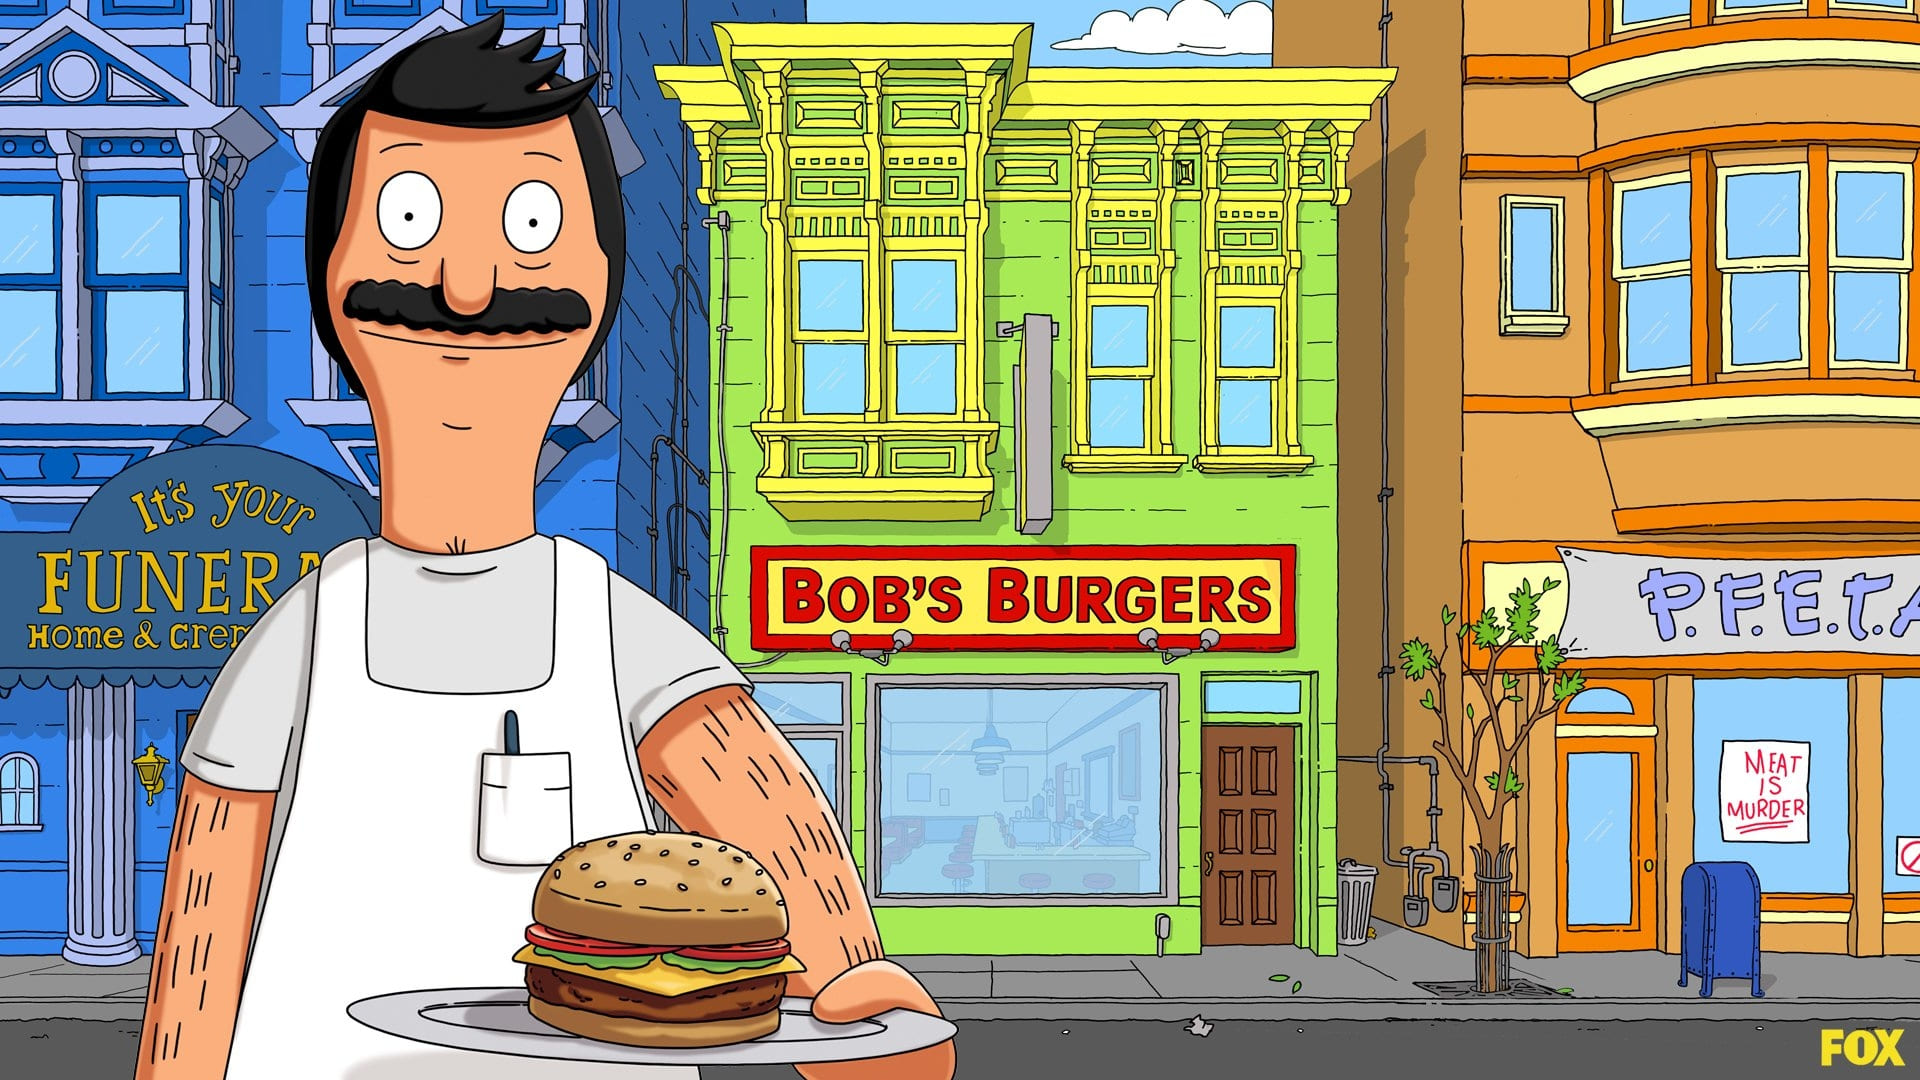 Bobs burgers images